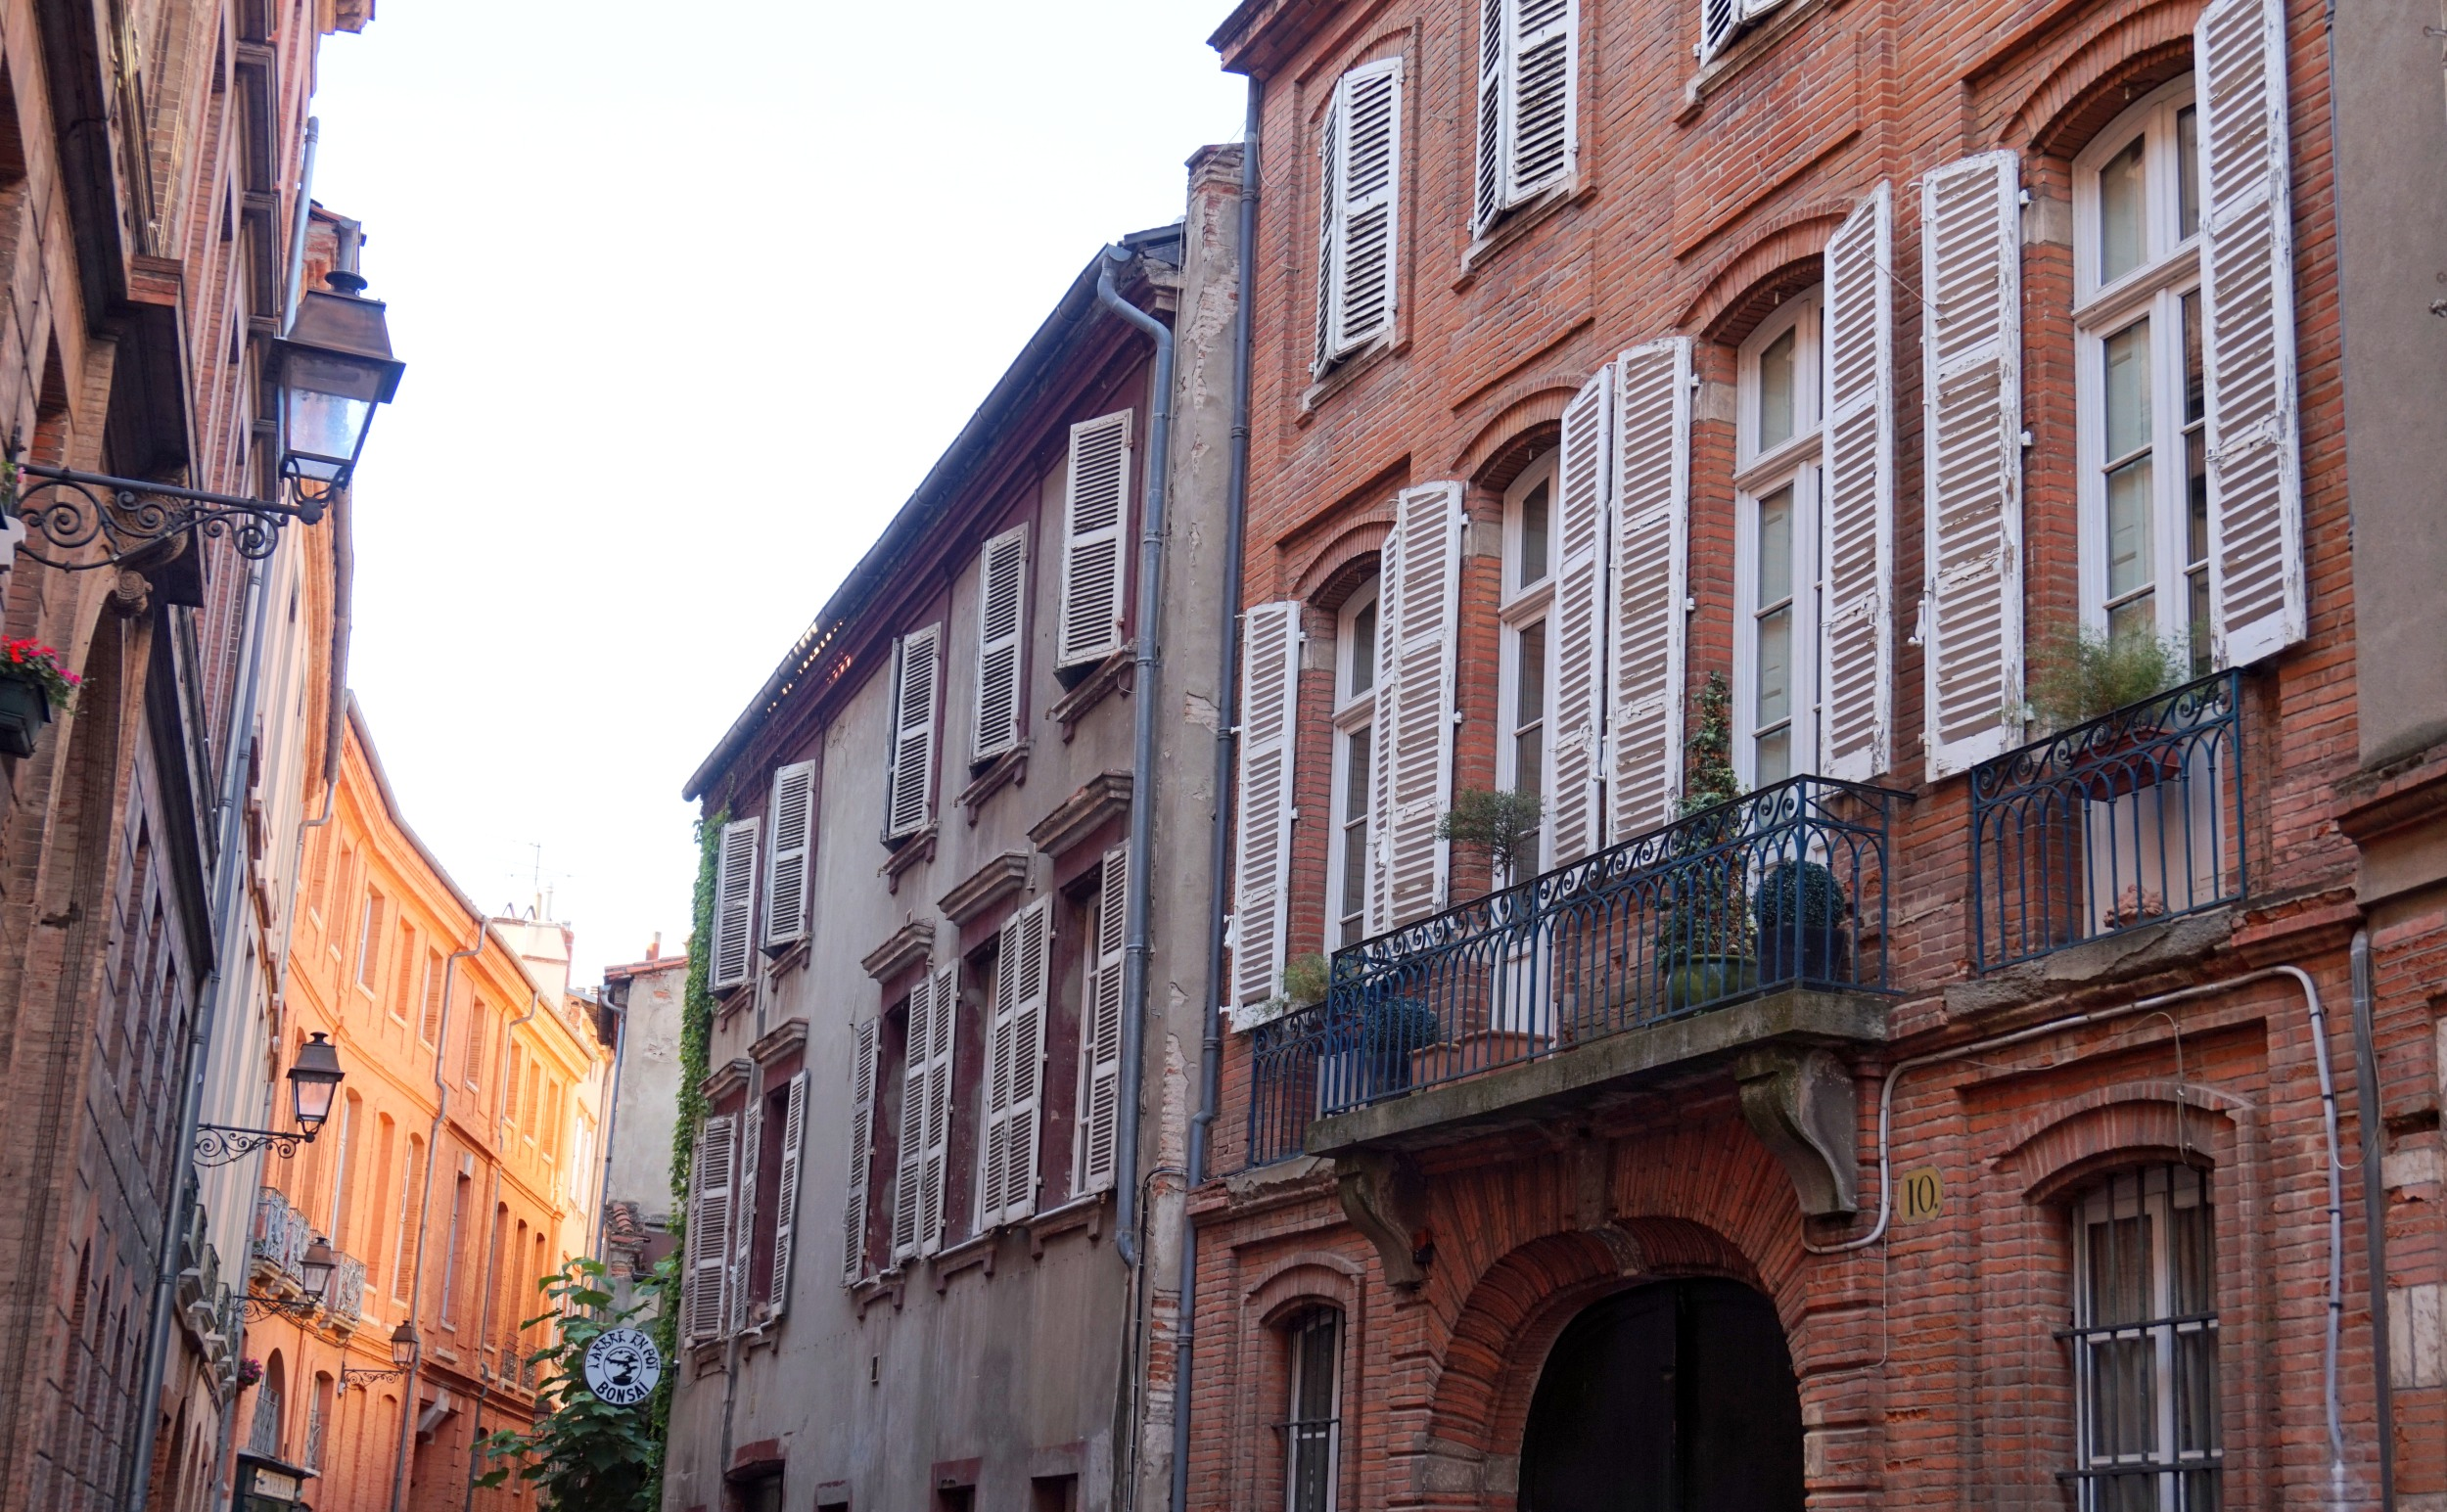 Balade-Toulouse-St-Etienne-34